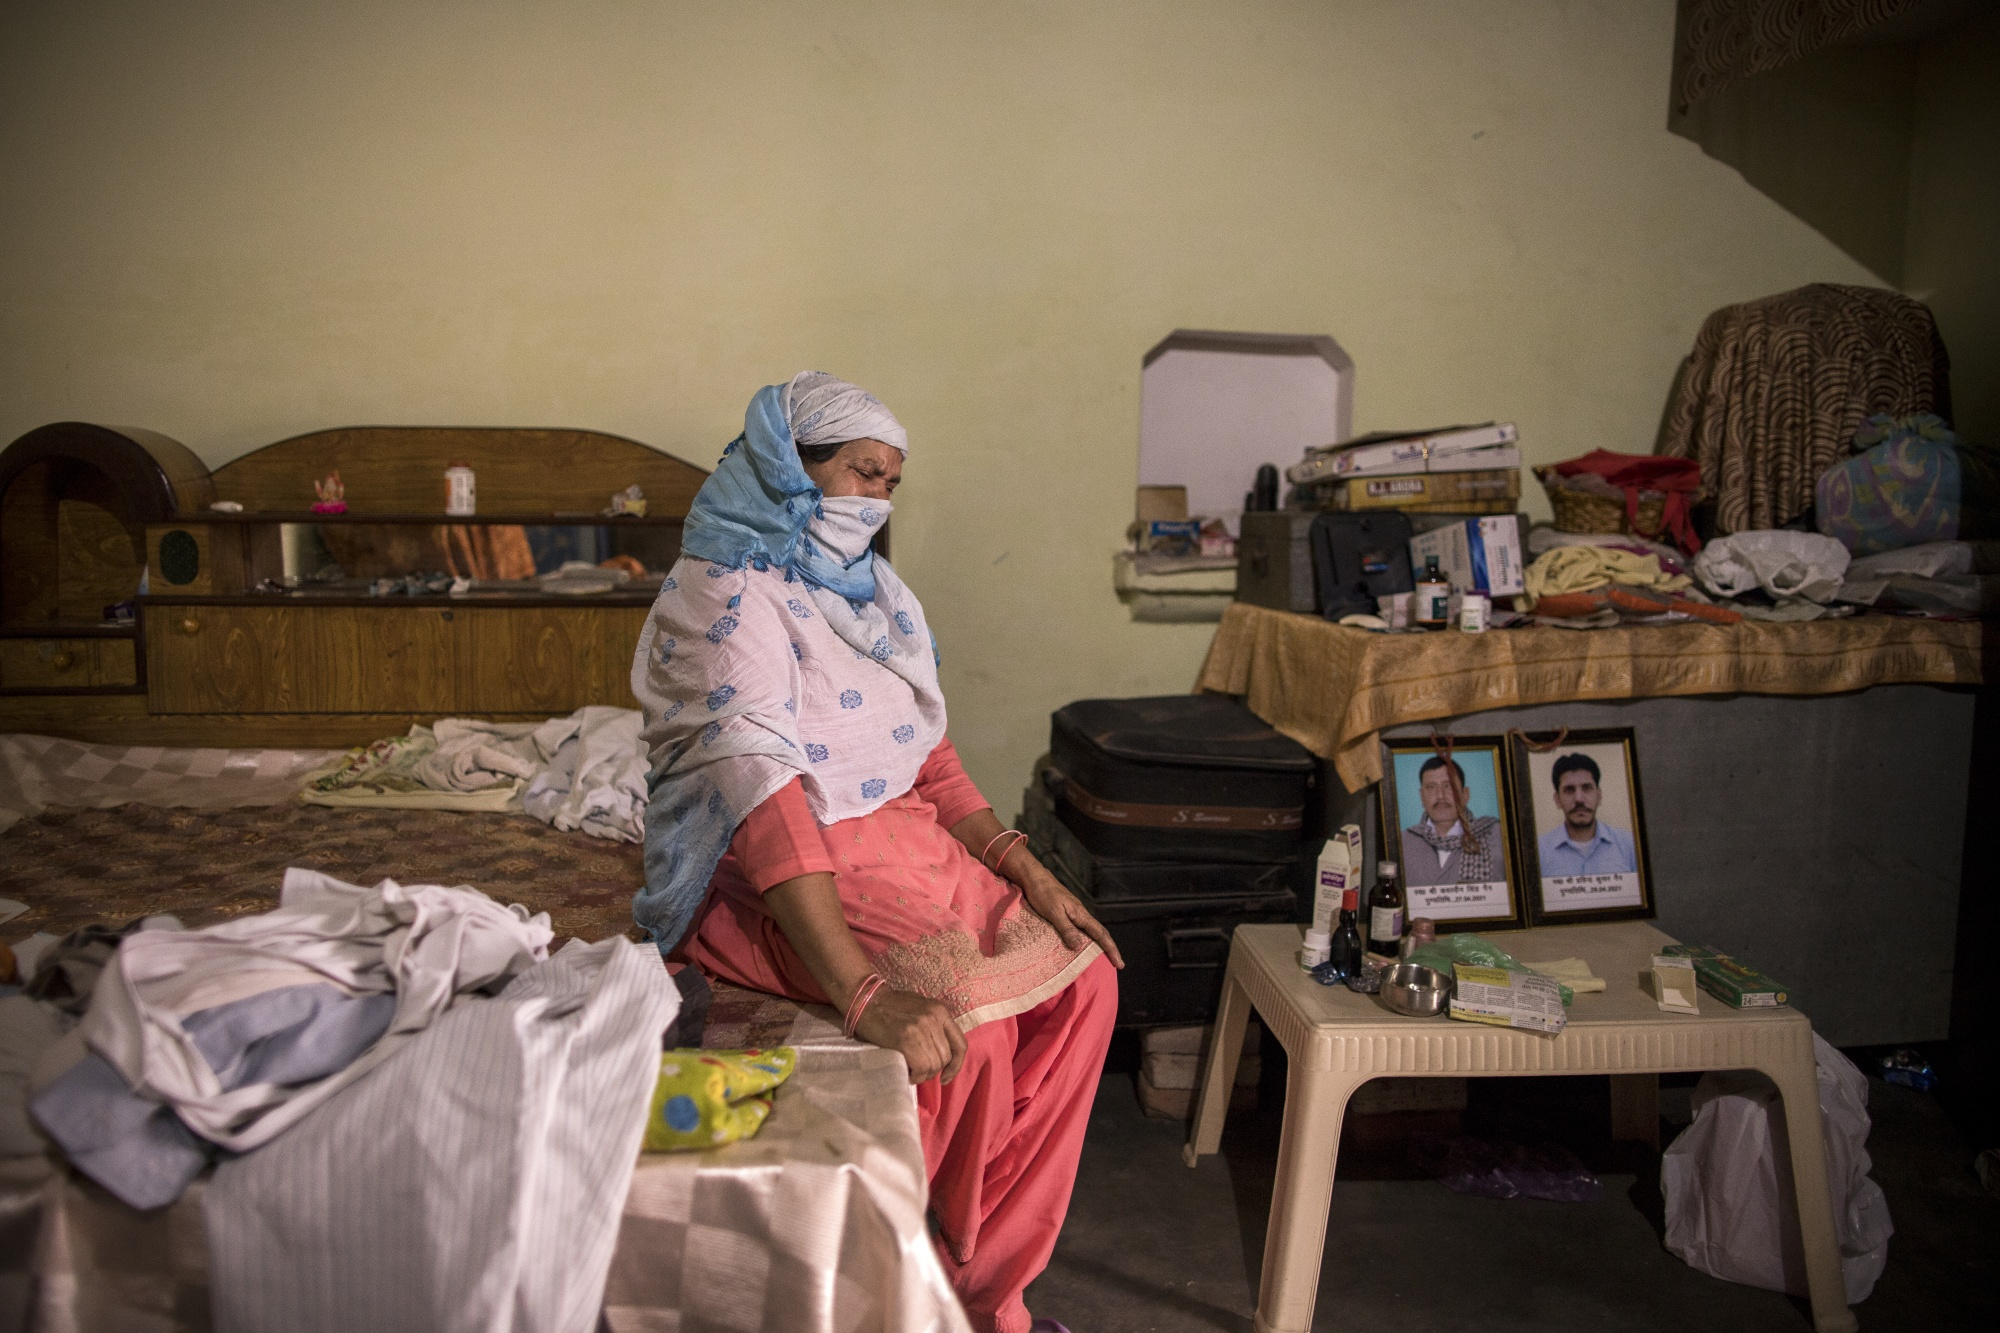 Wife of Covid fatality Kuwarsen Singh weeps next to portraits of diseased Kuwarsen Singh (L) and his son Pravinder Kumar. Kuwarsen singh was sent to an election duty where he was infected with the Covid virus. Picture taken at his house in the village Bassi, in Baghpath, Uttar Pradesh, India